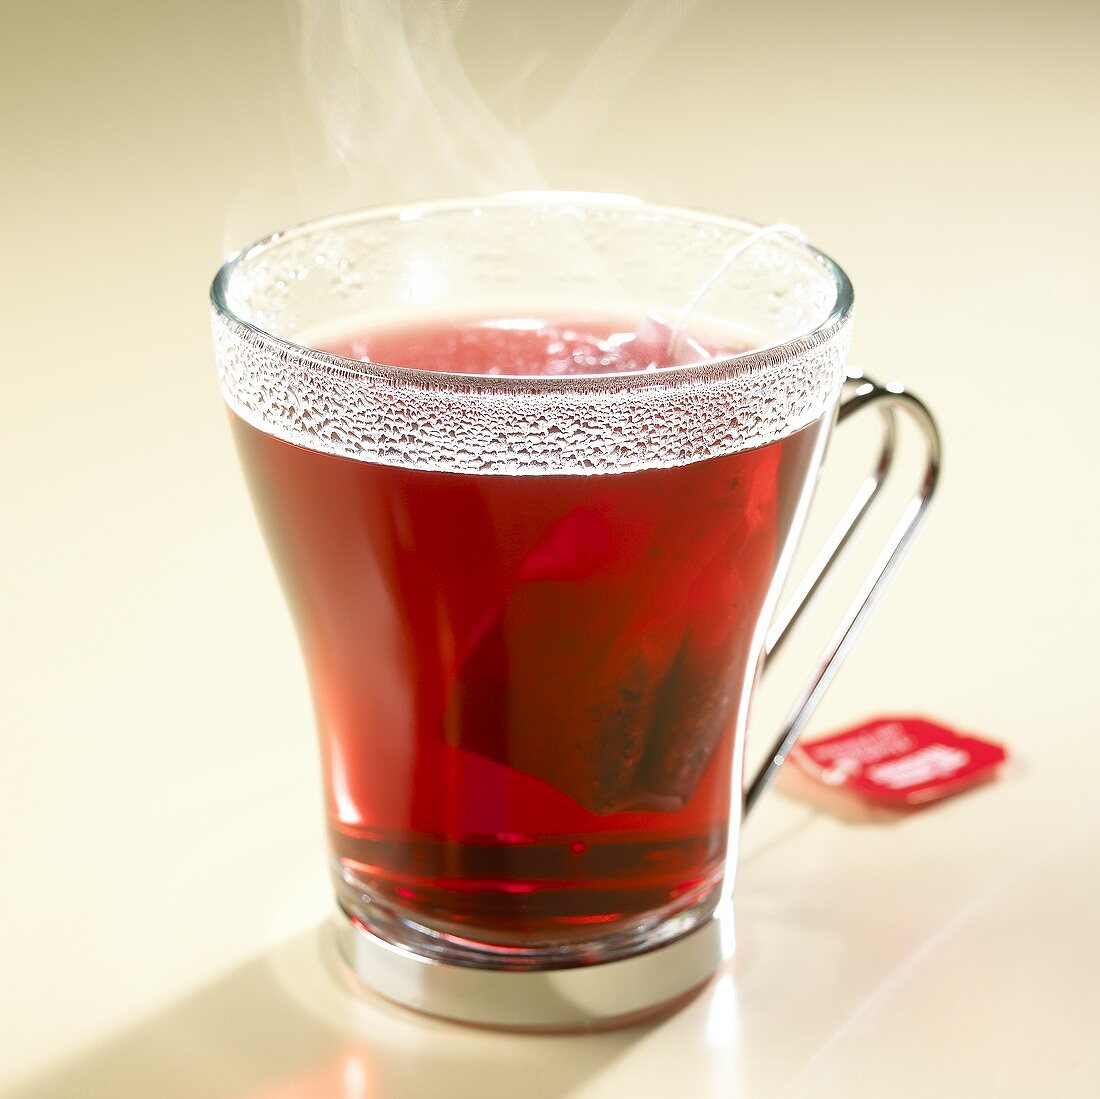 Steaming rose hip tea with tea bag in glass